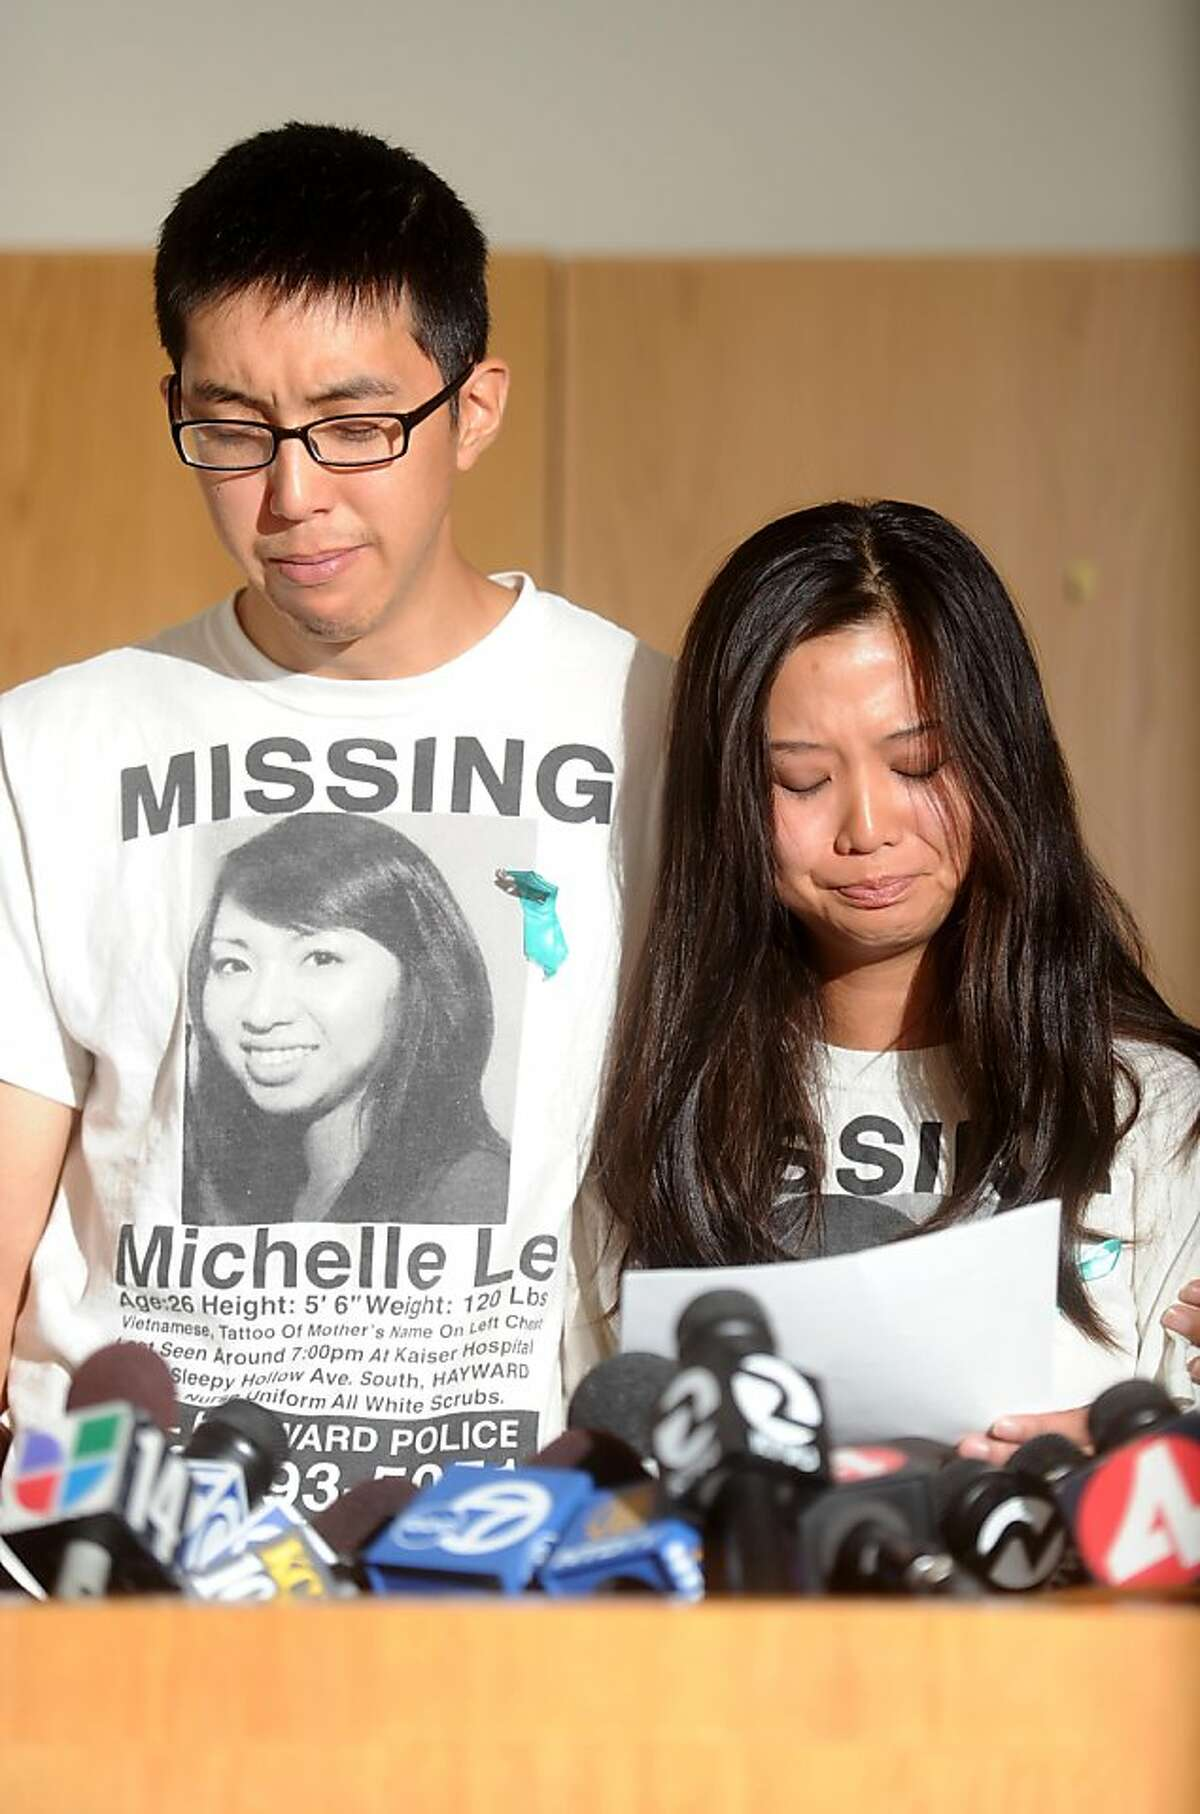 Michael Le and his cousin Krystine Dinh choke back tears during a news conference Wednesday, Sept. 7, 2011, in Hayward, Calif. Police announced they have arrested Giselle Esteban on suspicion of murdering Michael's sister Michelle Le, a nursing student who disappeared in May.